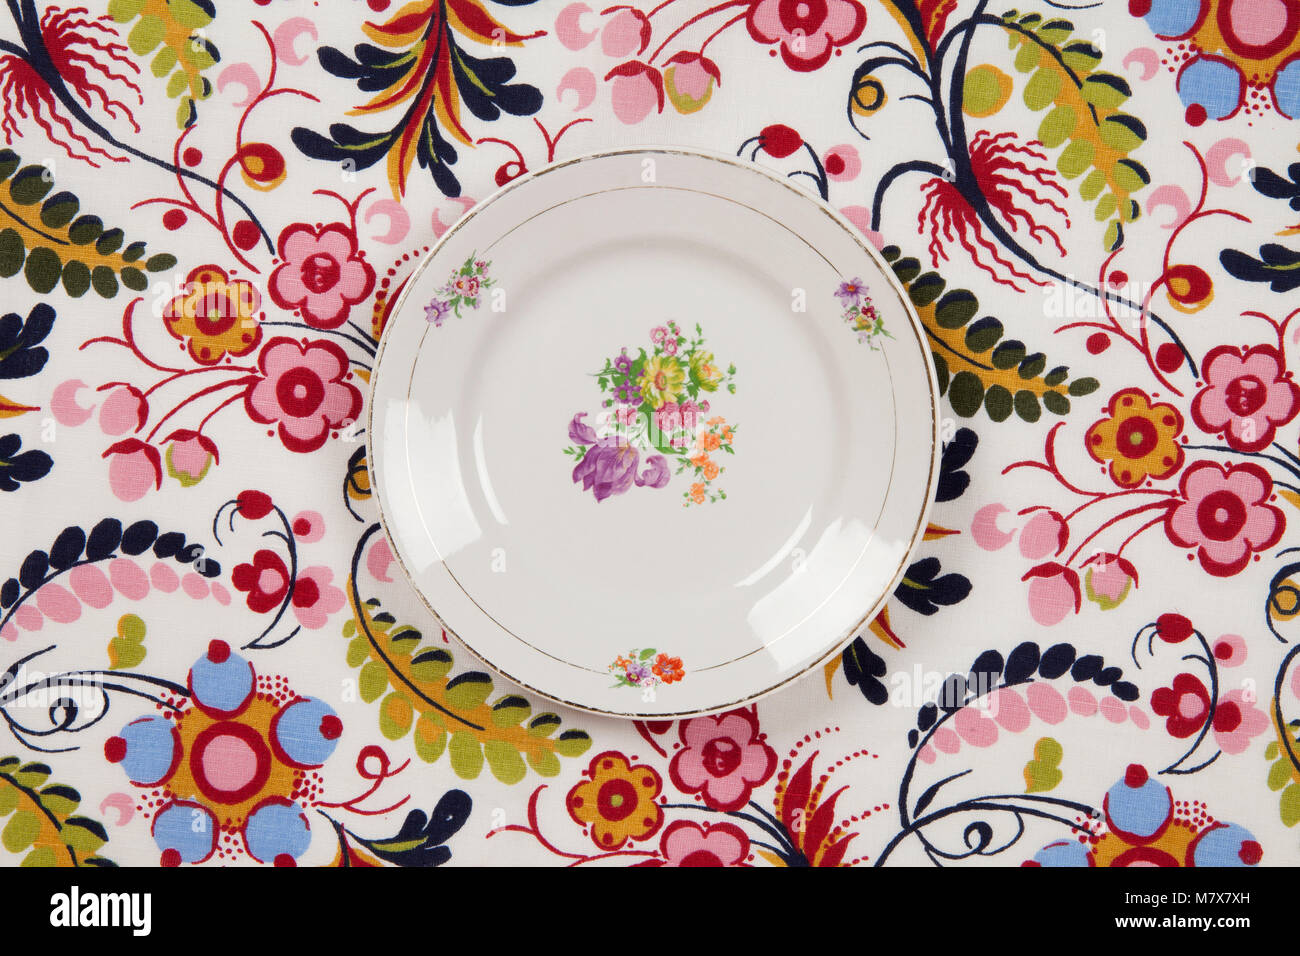 a flower plate hidden on a flowery fabric. Camouflage game. Minimal color still life photography. Stock Photo